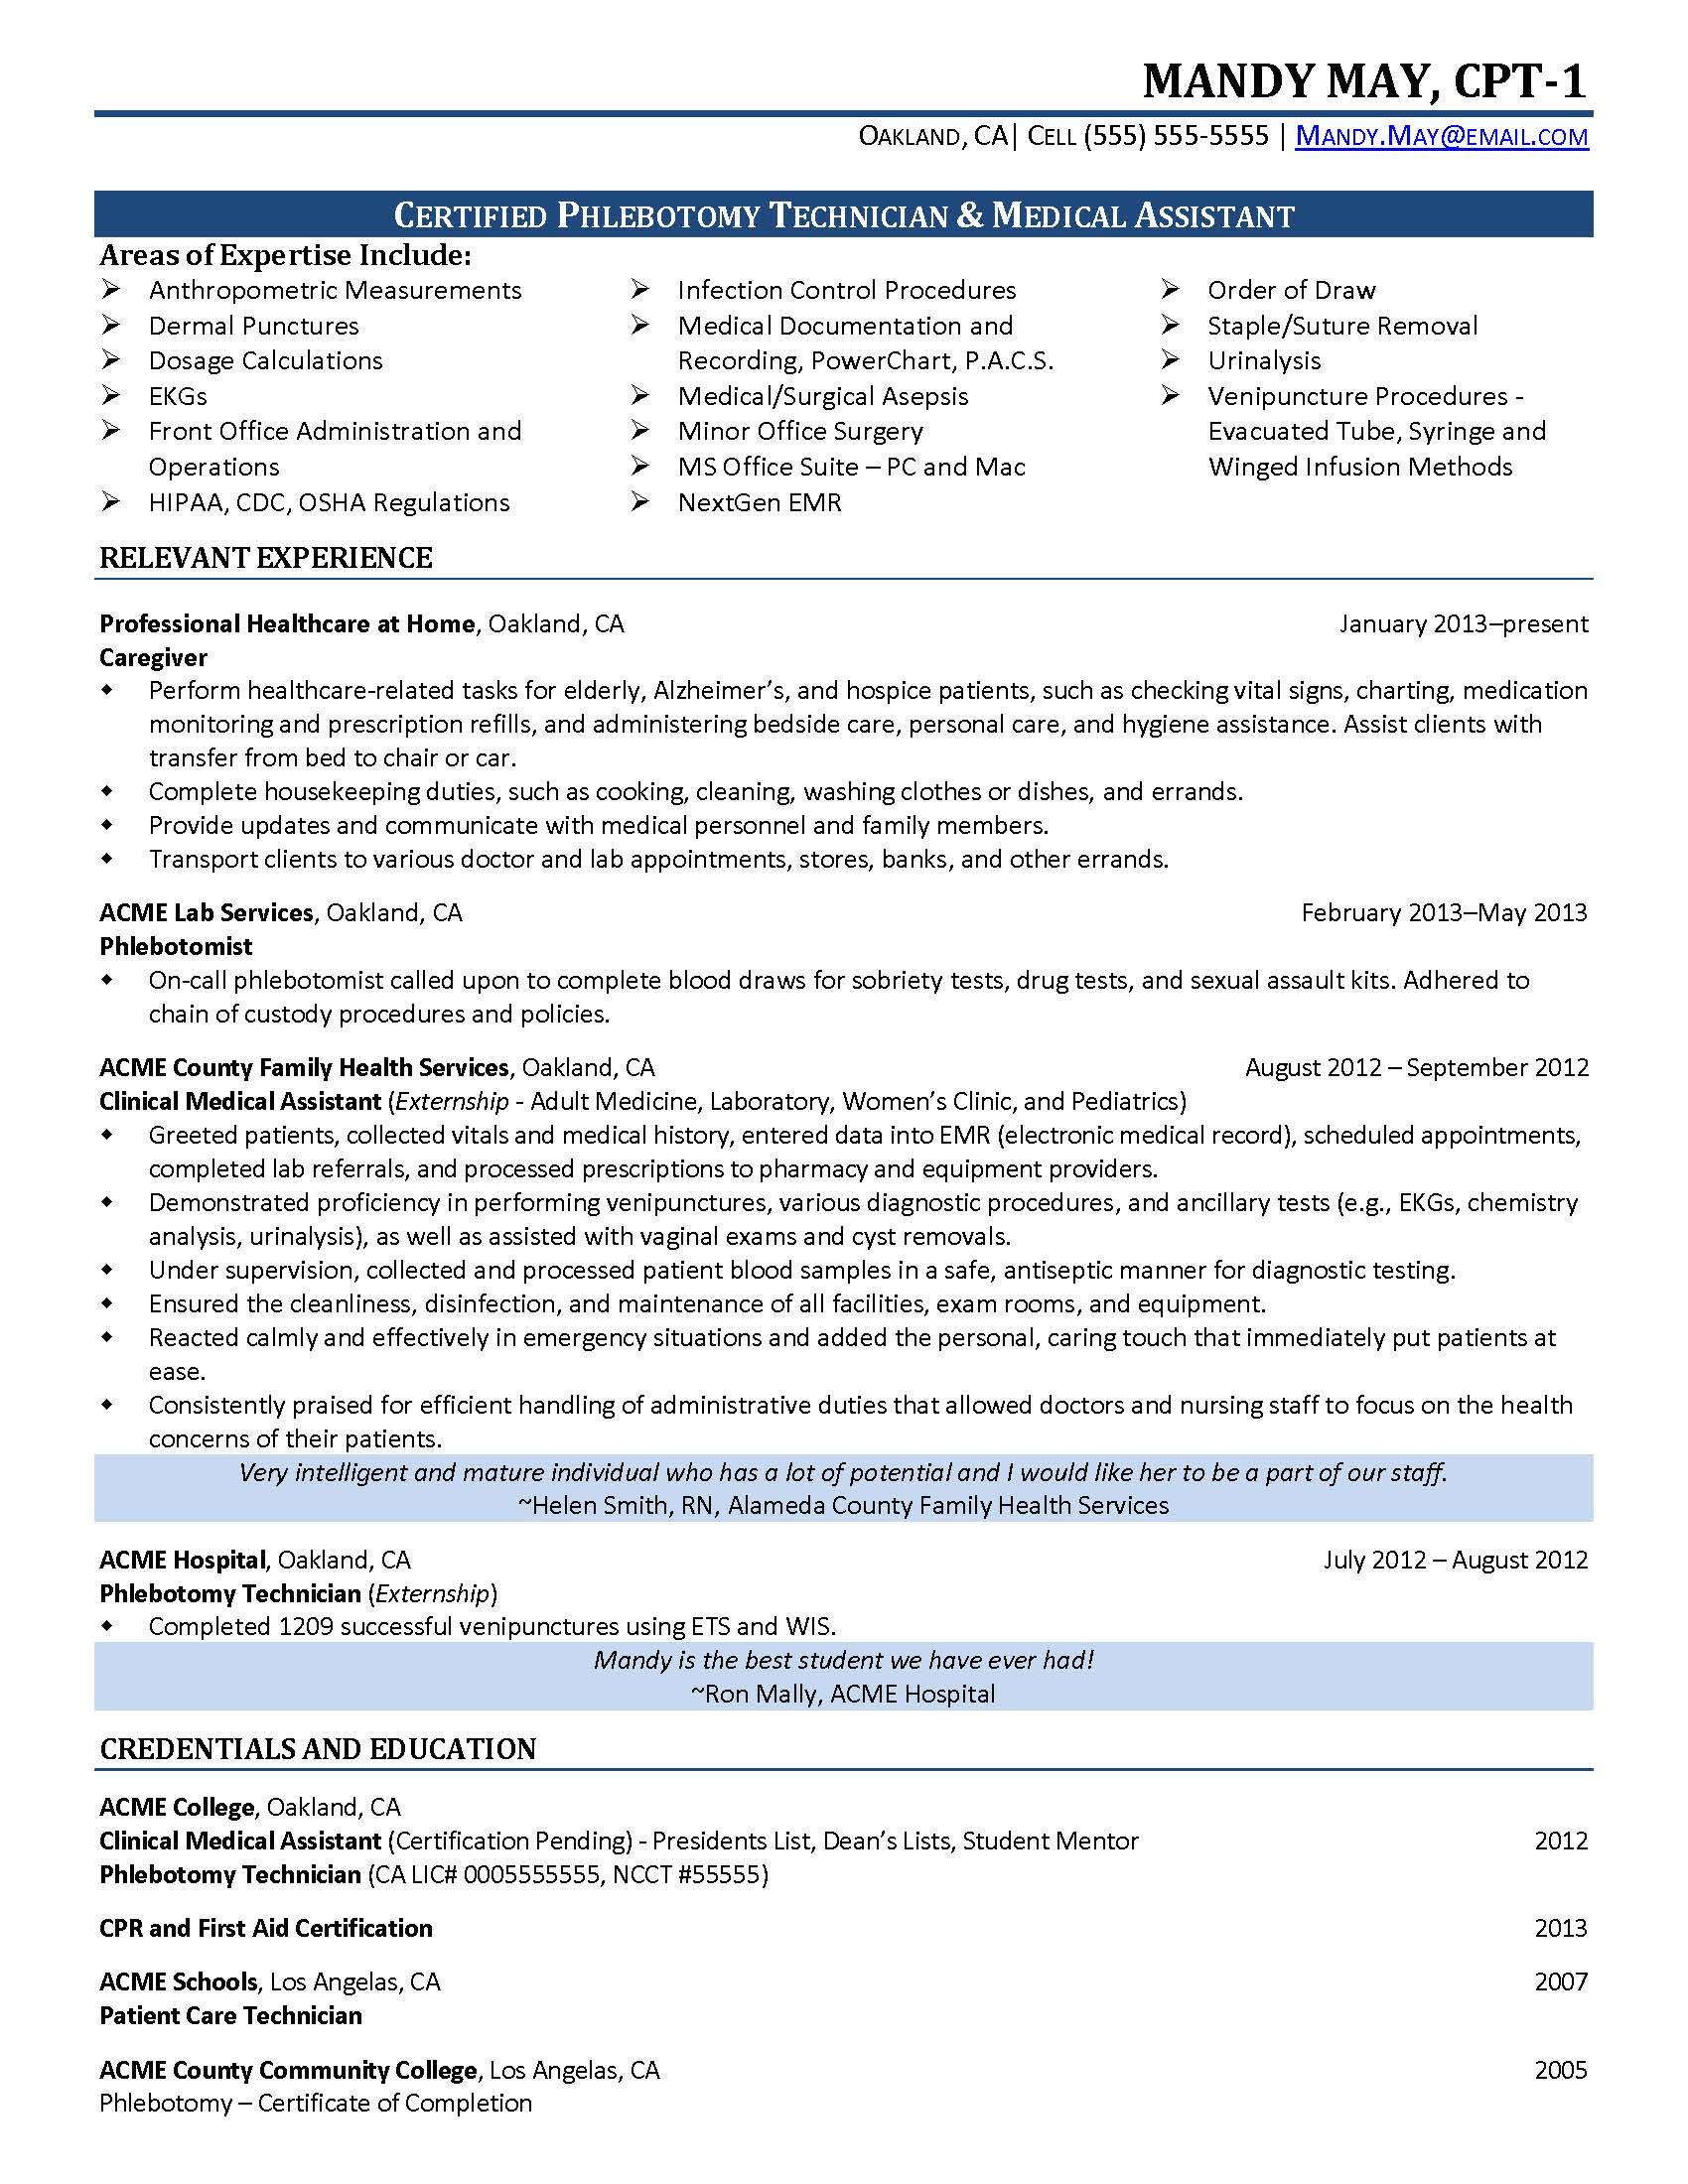 phlebotomist resume sample phlebotomy template phlebotomist resume sample resume for phlebotomist acting resume sample phlebotomy